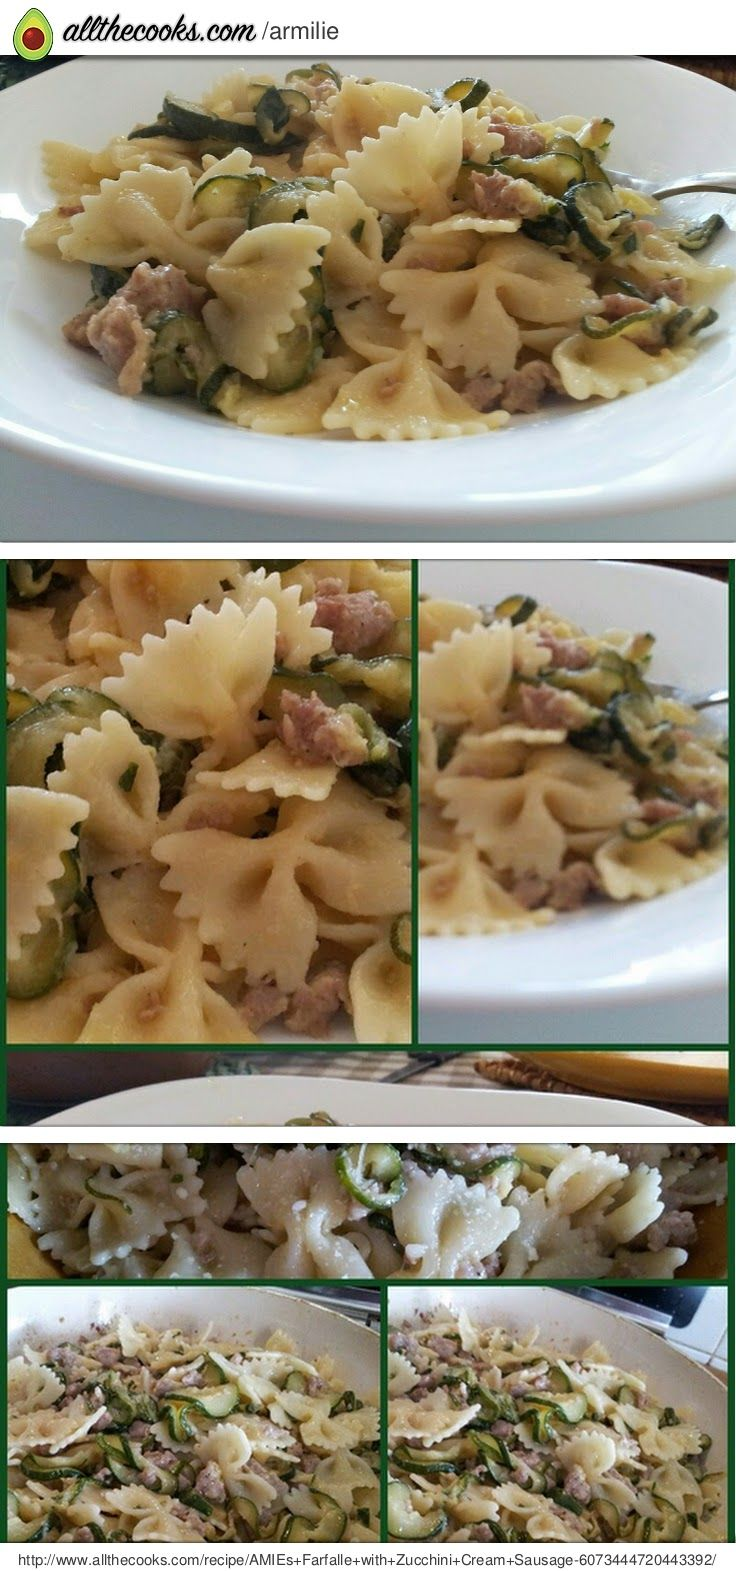 AMIEs Farfalle with Zucchini, Cream & Sausage! 5.00 stars, 1 reviews ...